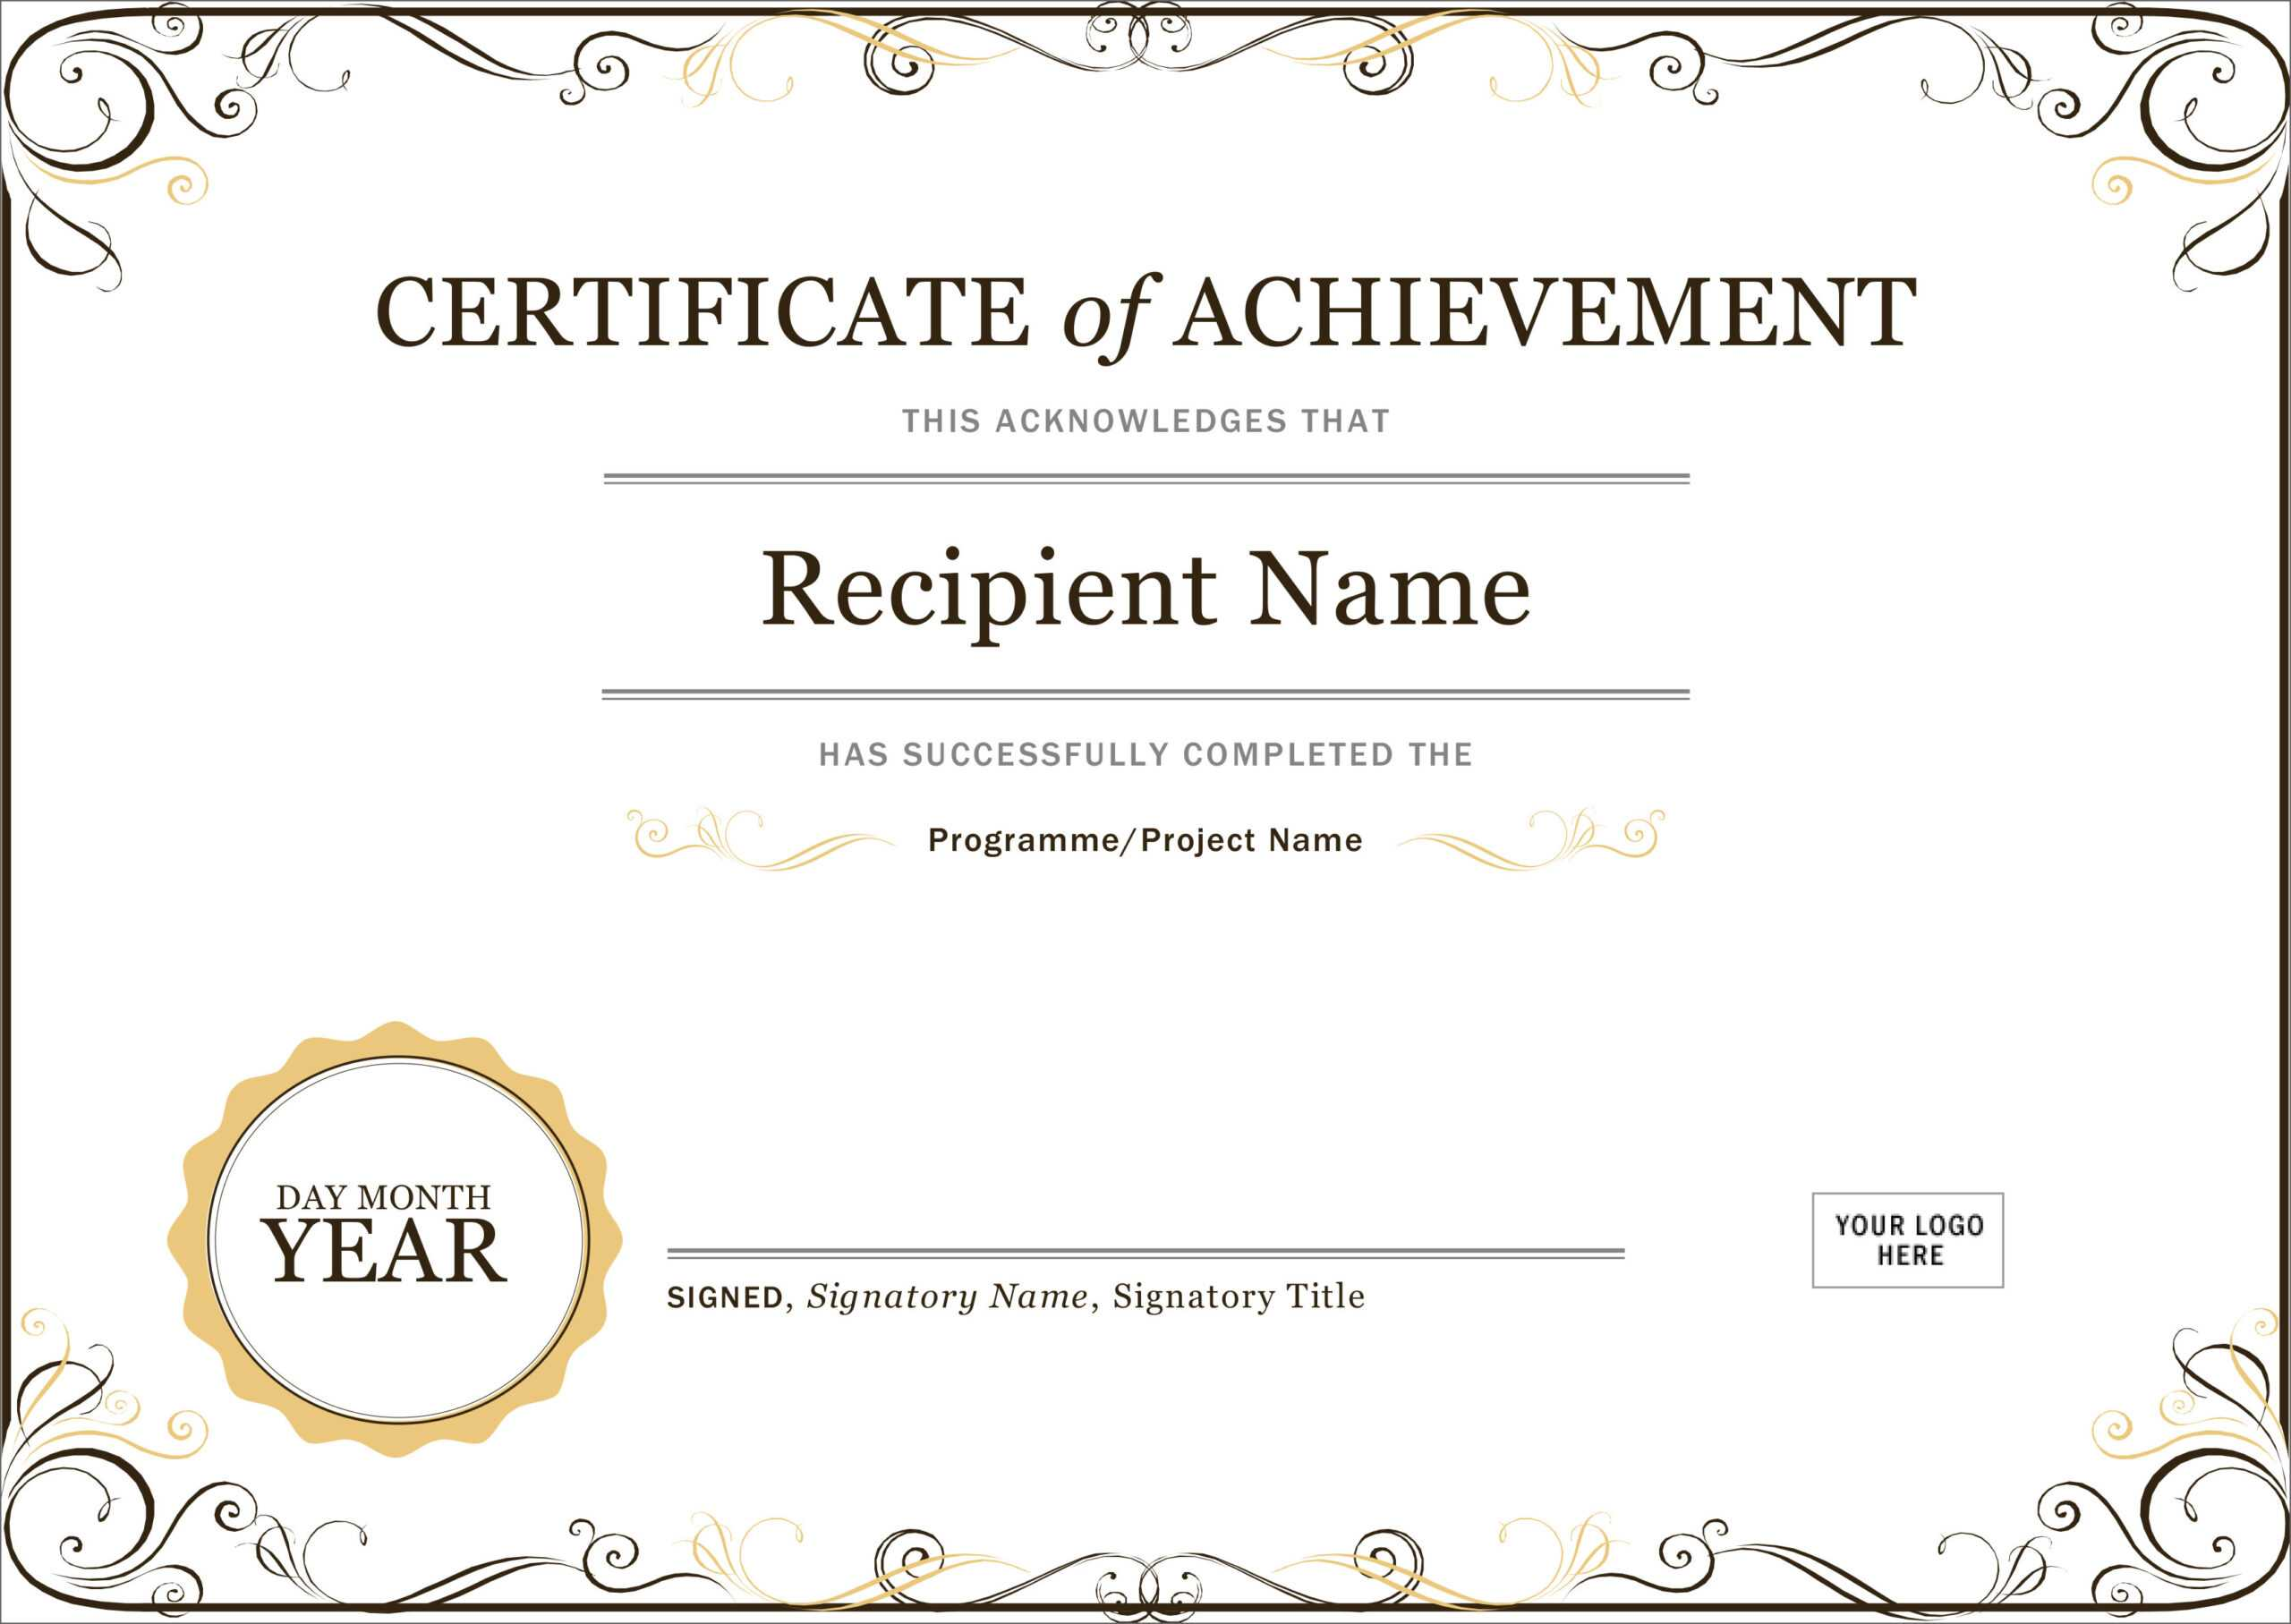 50 Free Creative Blank Certificate Templates In Psd Regarding Template For Certificate Of Appreciation In Microsoft Word